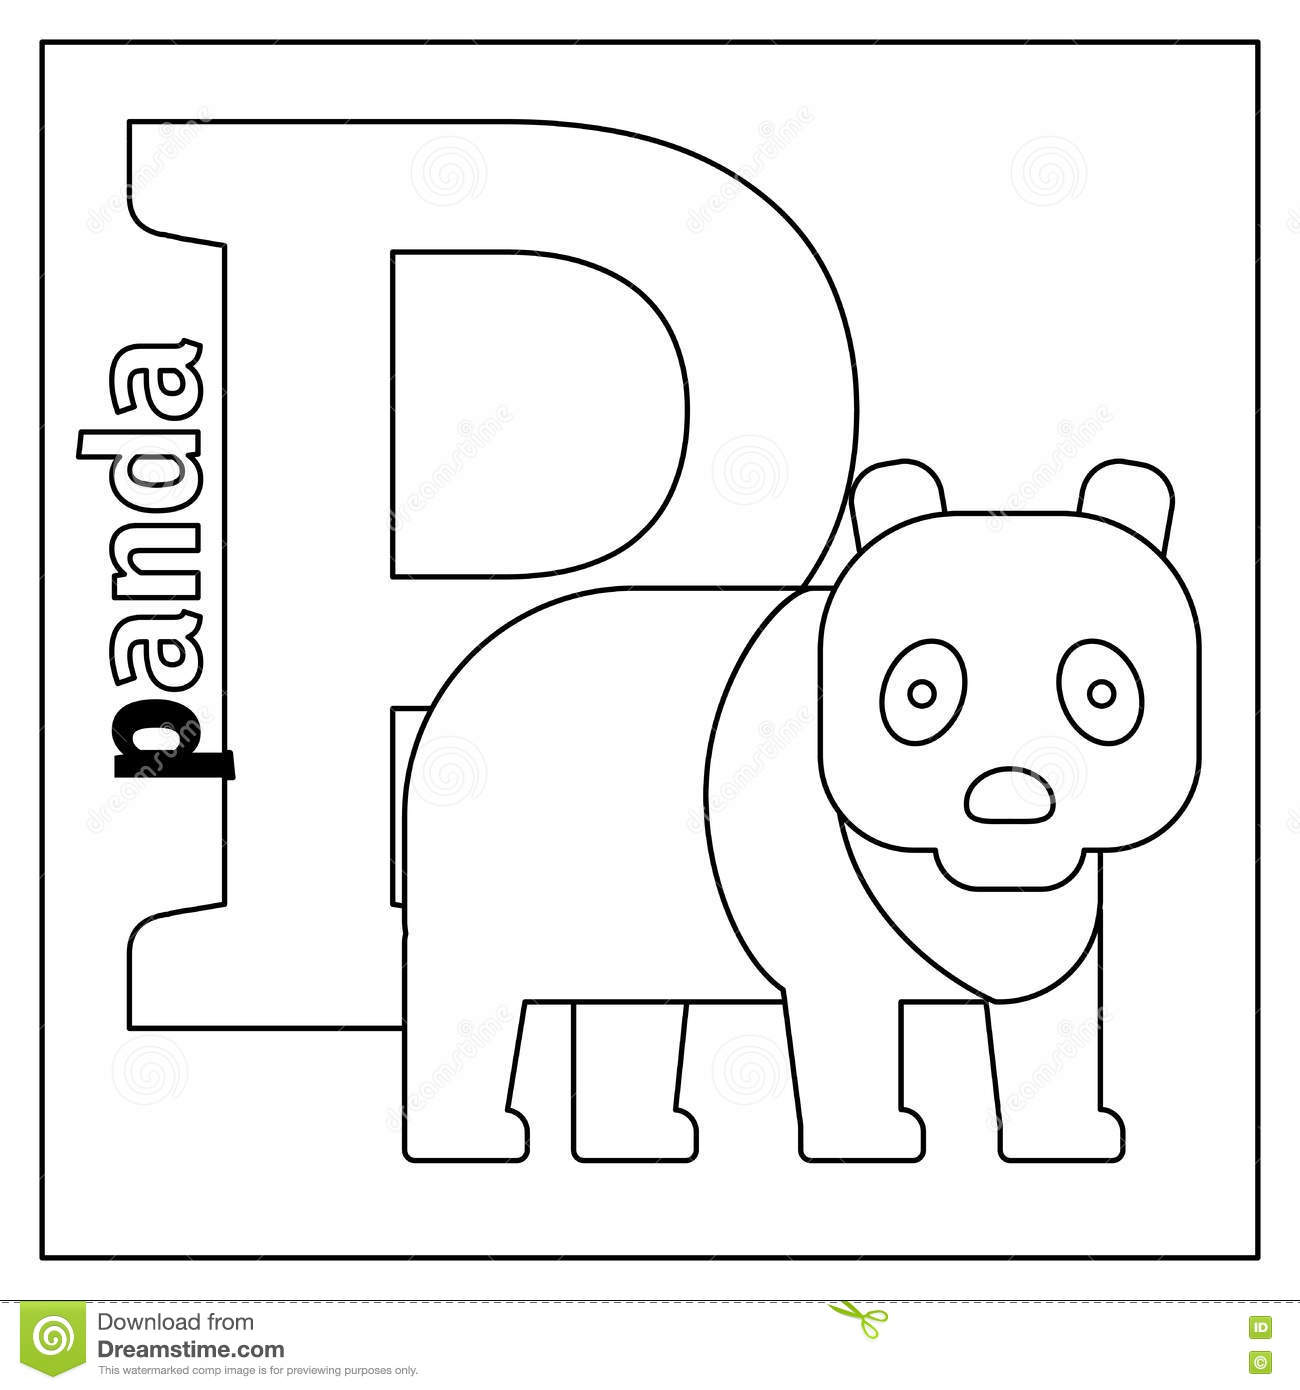 Panda, Letter P Coloring Page Stock Vector - Illustration of cartoon ...